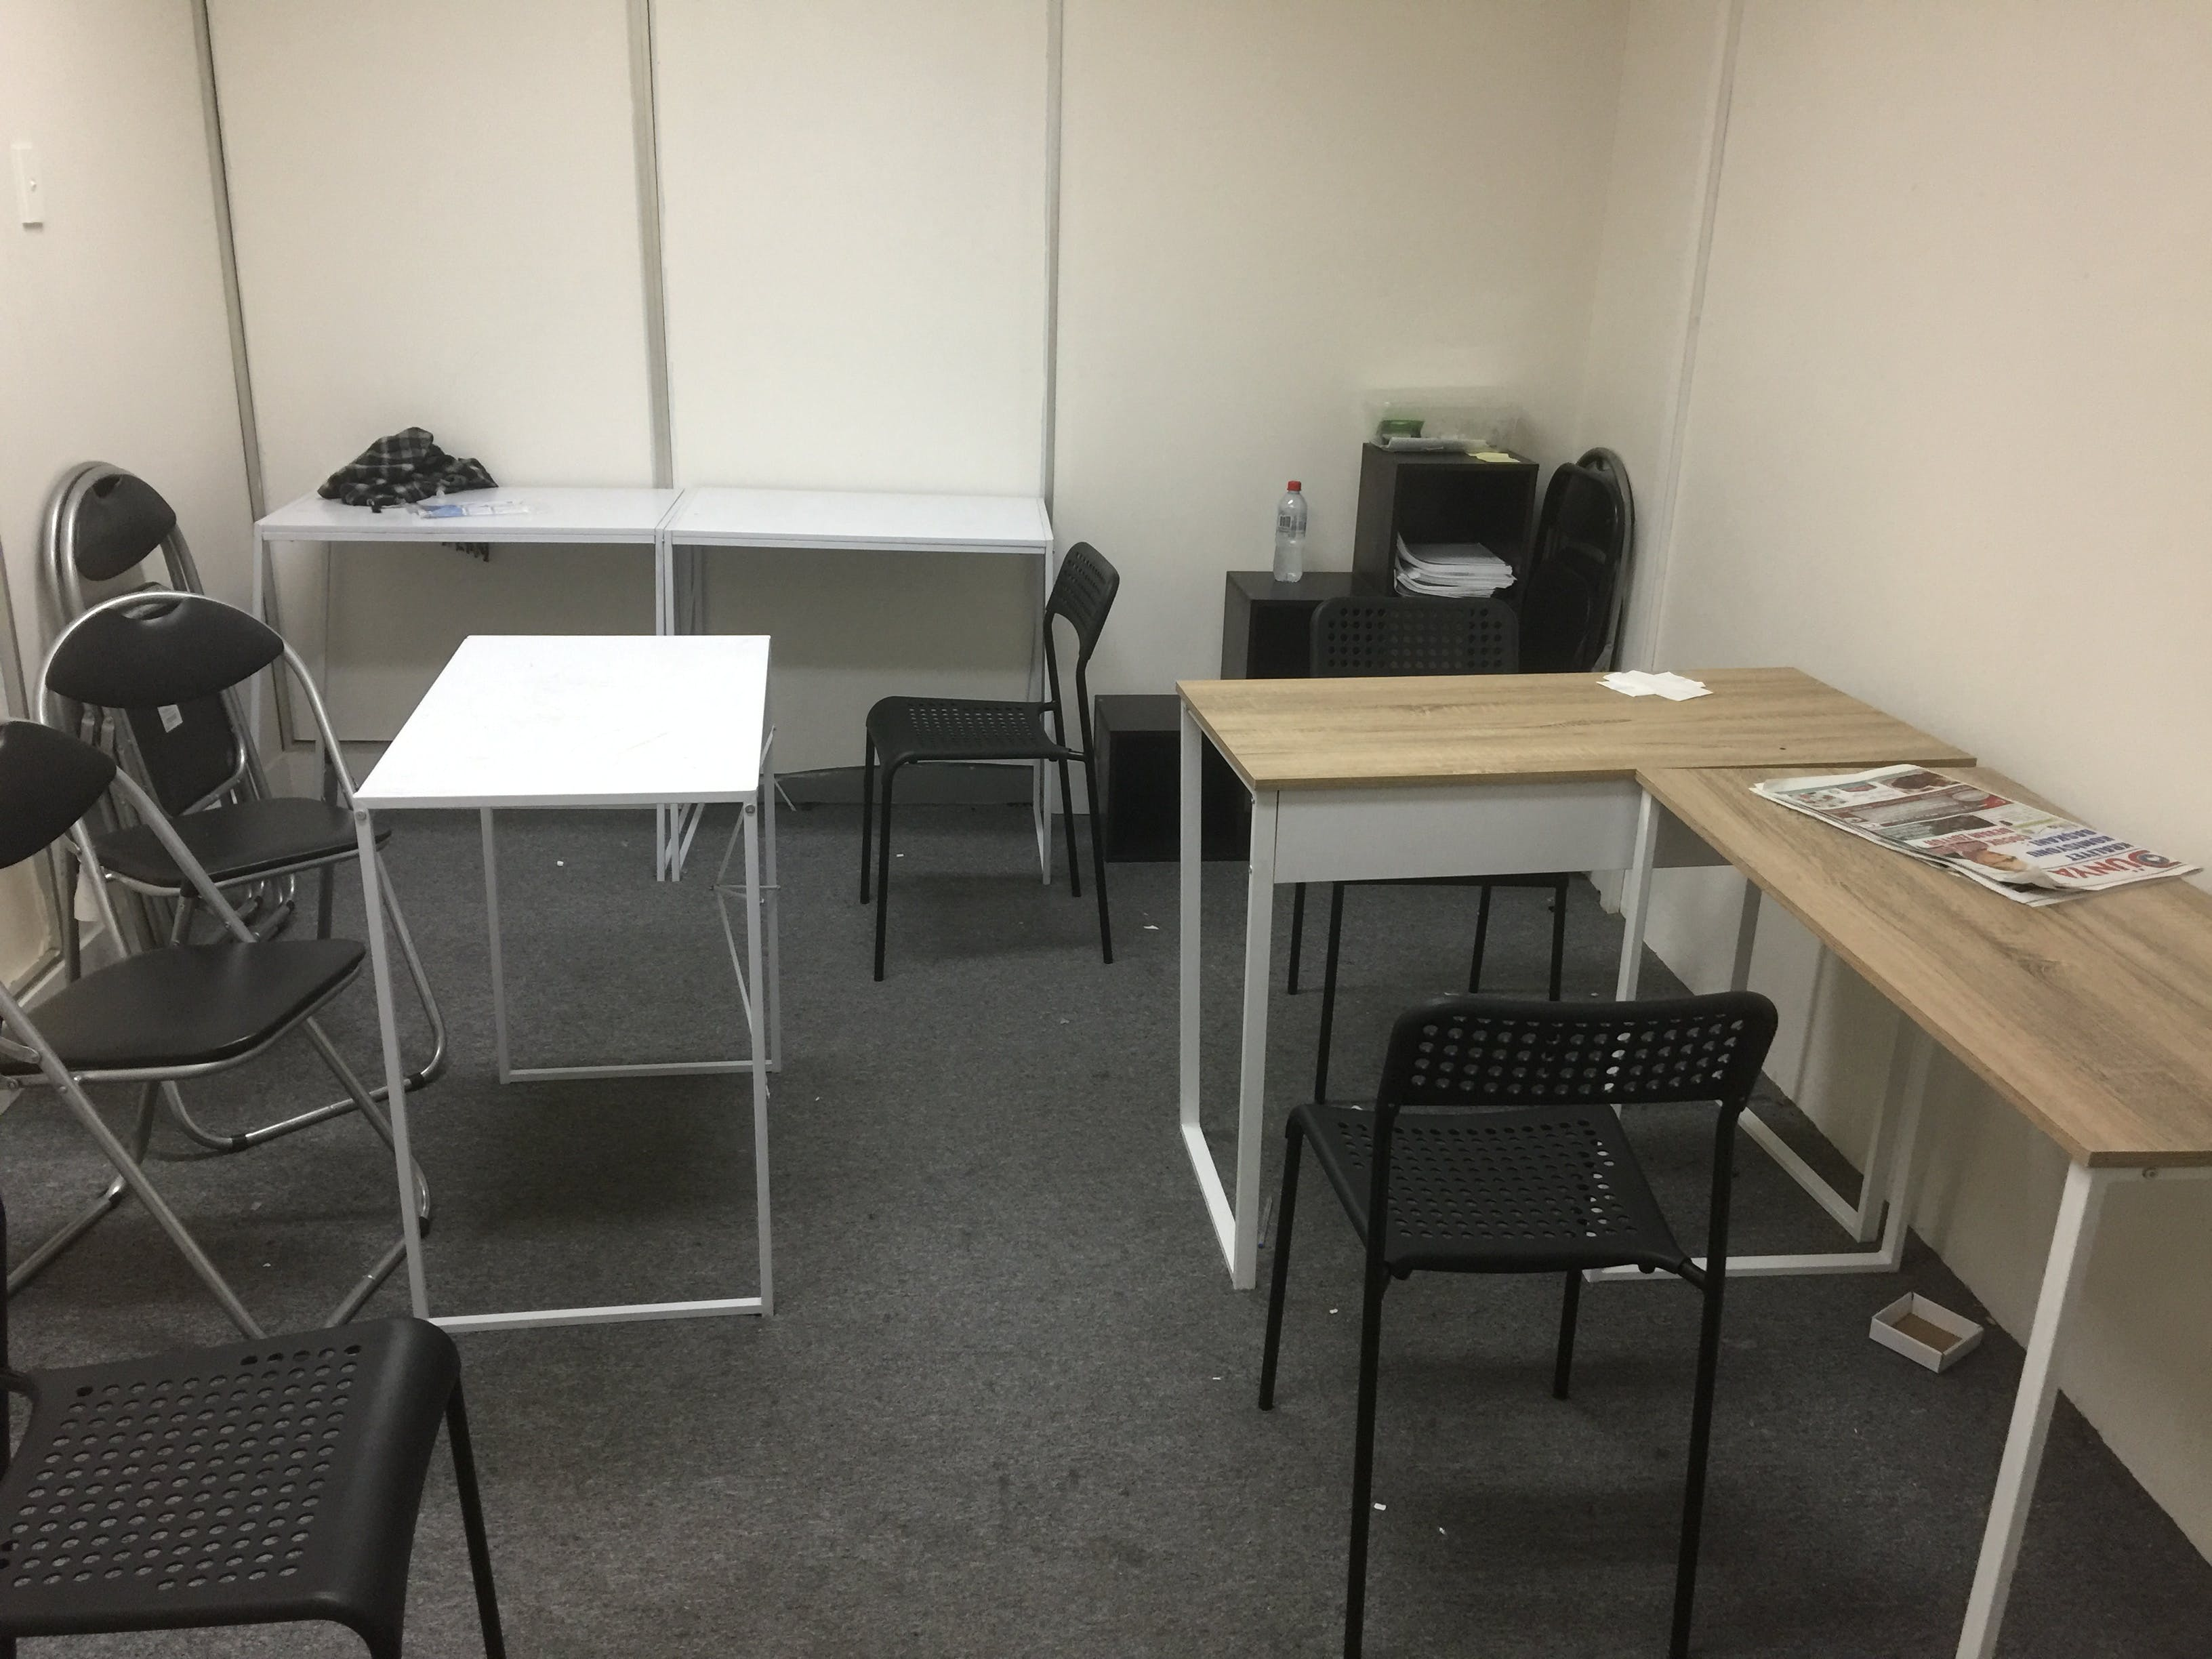 Shared office at Auburn tutoring and office space, image 4